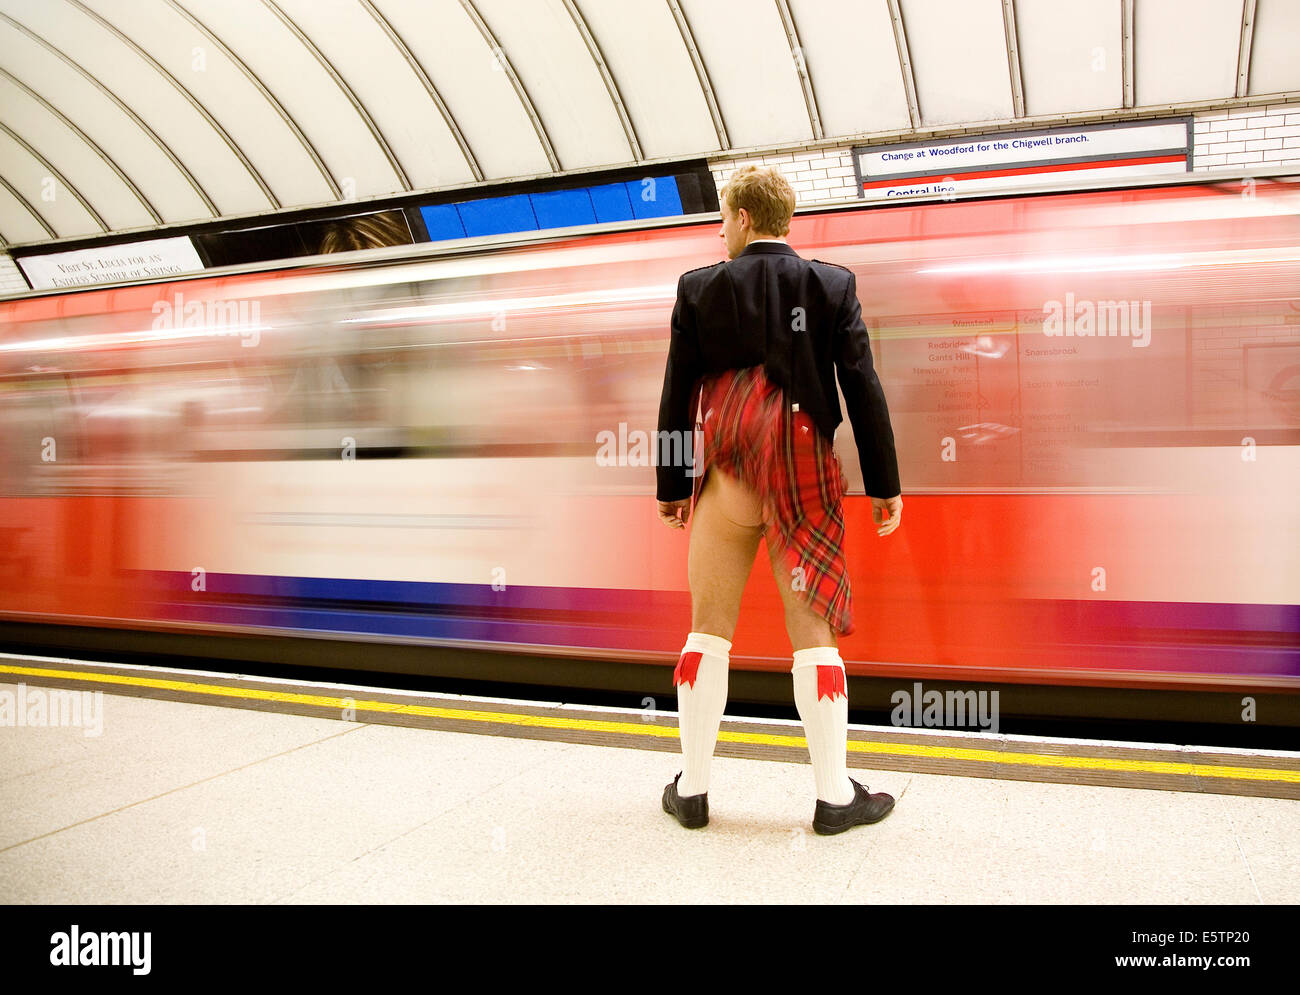 Kilt blows up in the wind as tube train comes into the station revealing a bare bottom - Stock Image